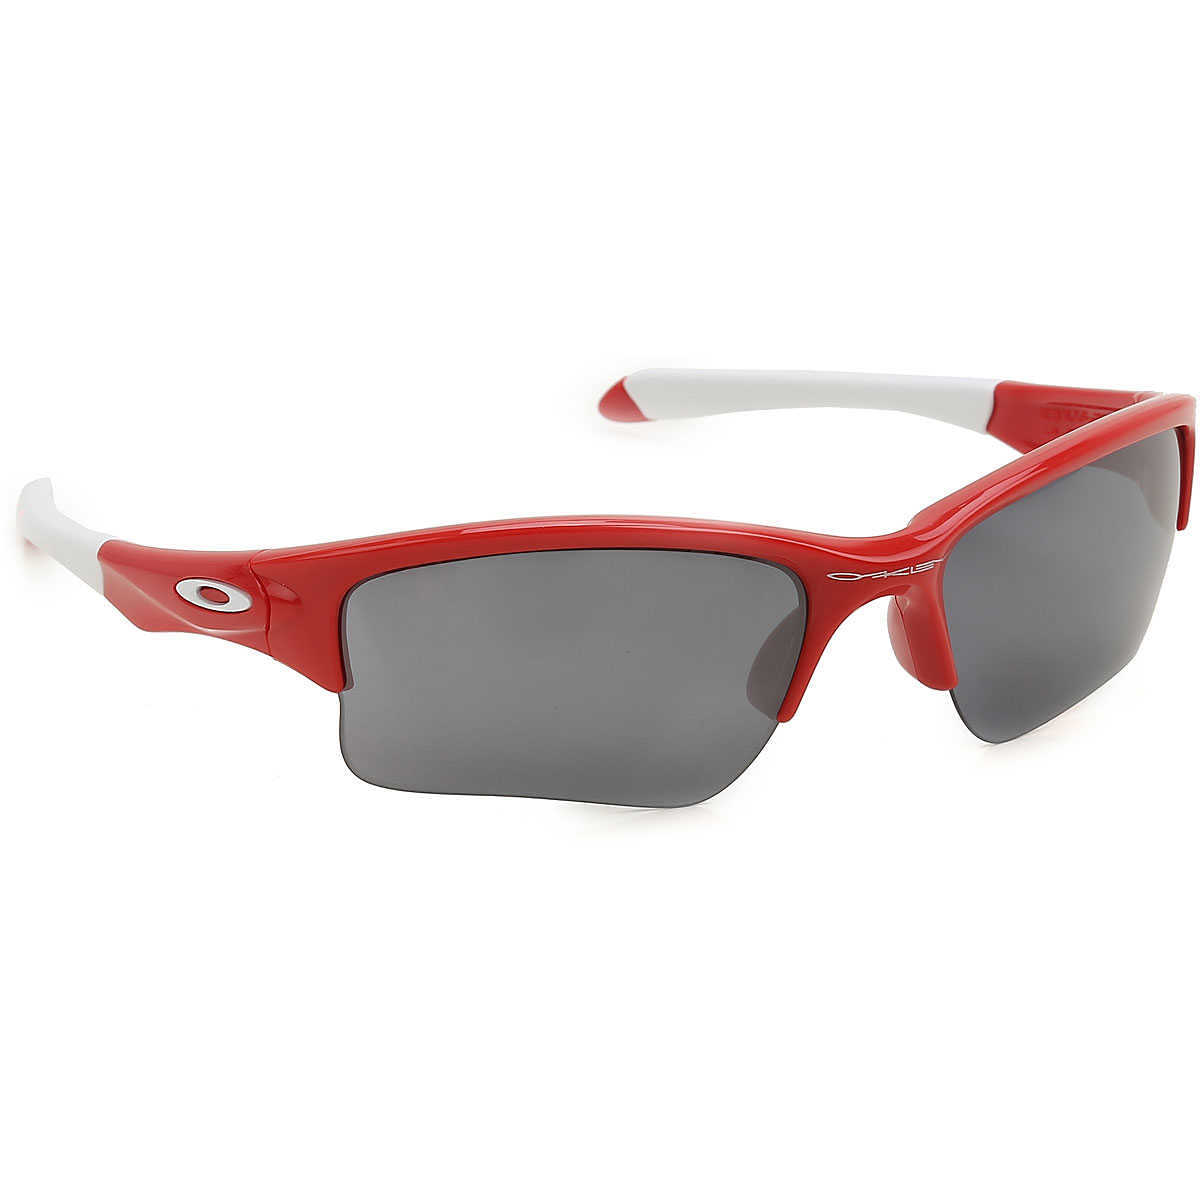 Oakley Kids Sunglasses for Boys On Sale in Outlet Red UK - GOOFASH - Mens SUNGLASSES